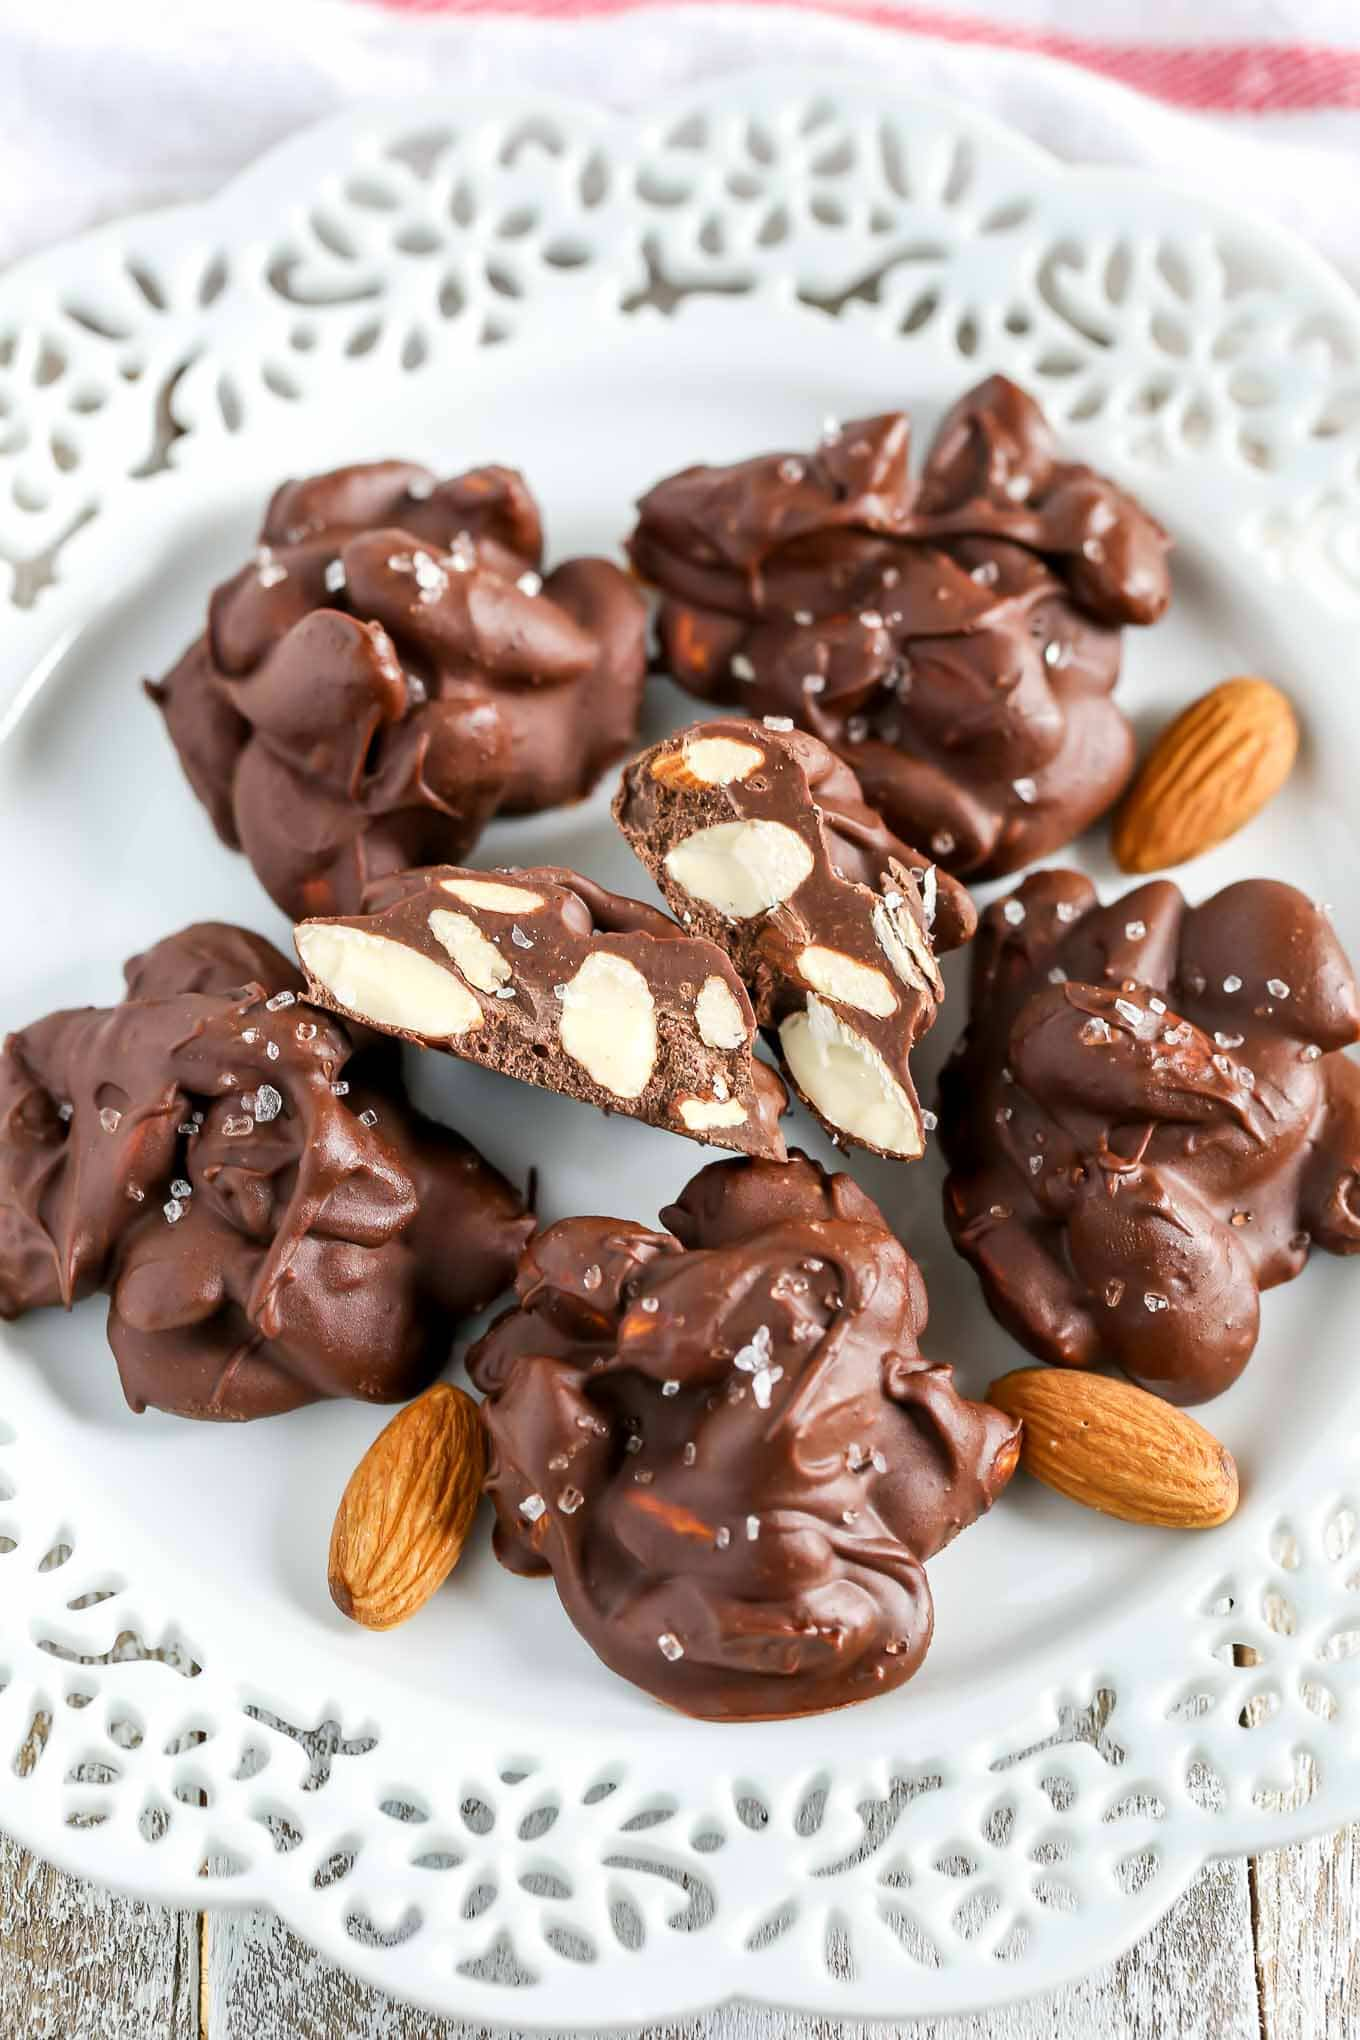 These Chocolate Espresso Almond Clusters are filled with semi-sweet chocolate, espresso powder, and crunchy almonds. These clusters are perfect for an easy dessert or snack!